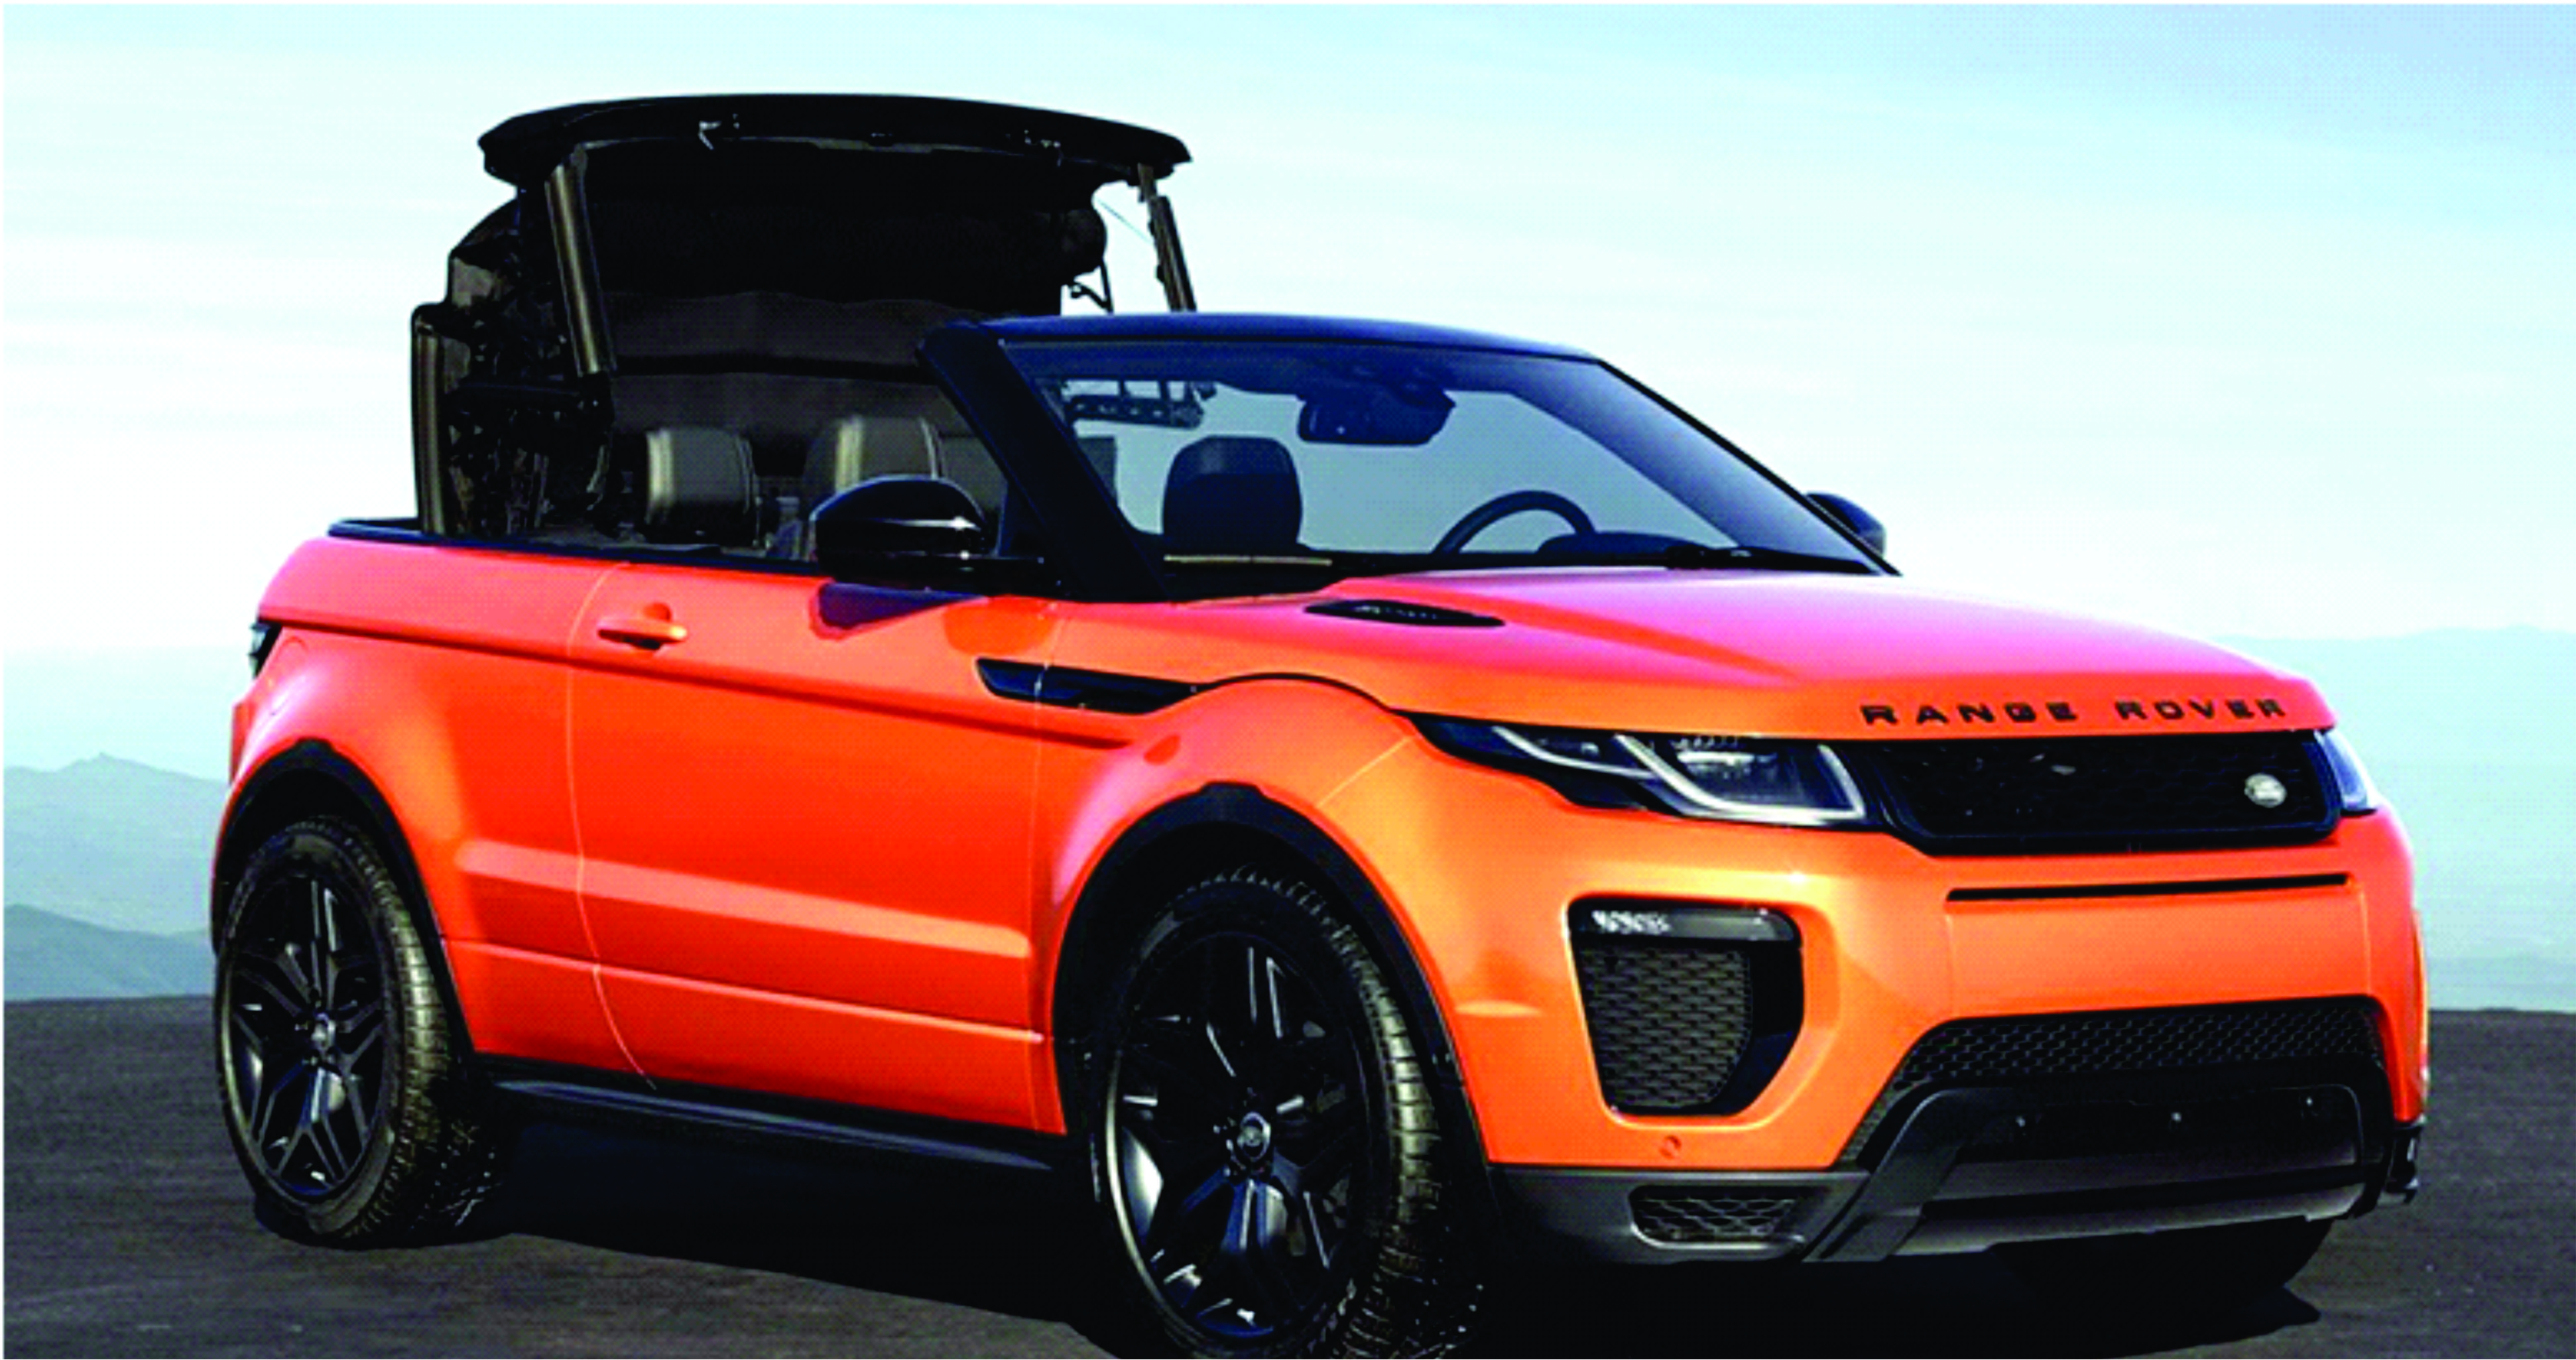 range rover evoque world s first luxury suv convertible national daily newspaper. Black Bedroom Furniture Sets. Home Design Ideas